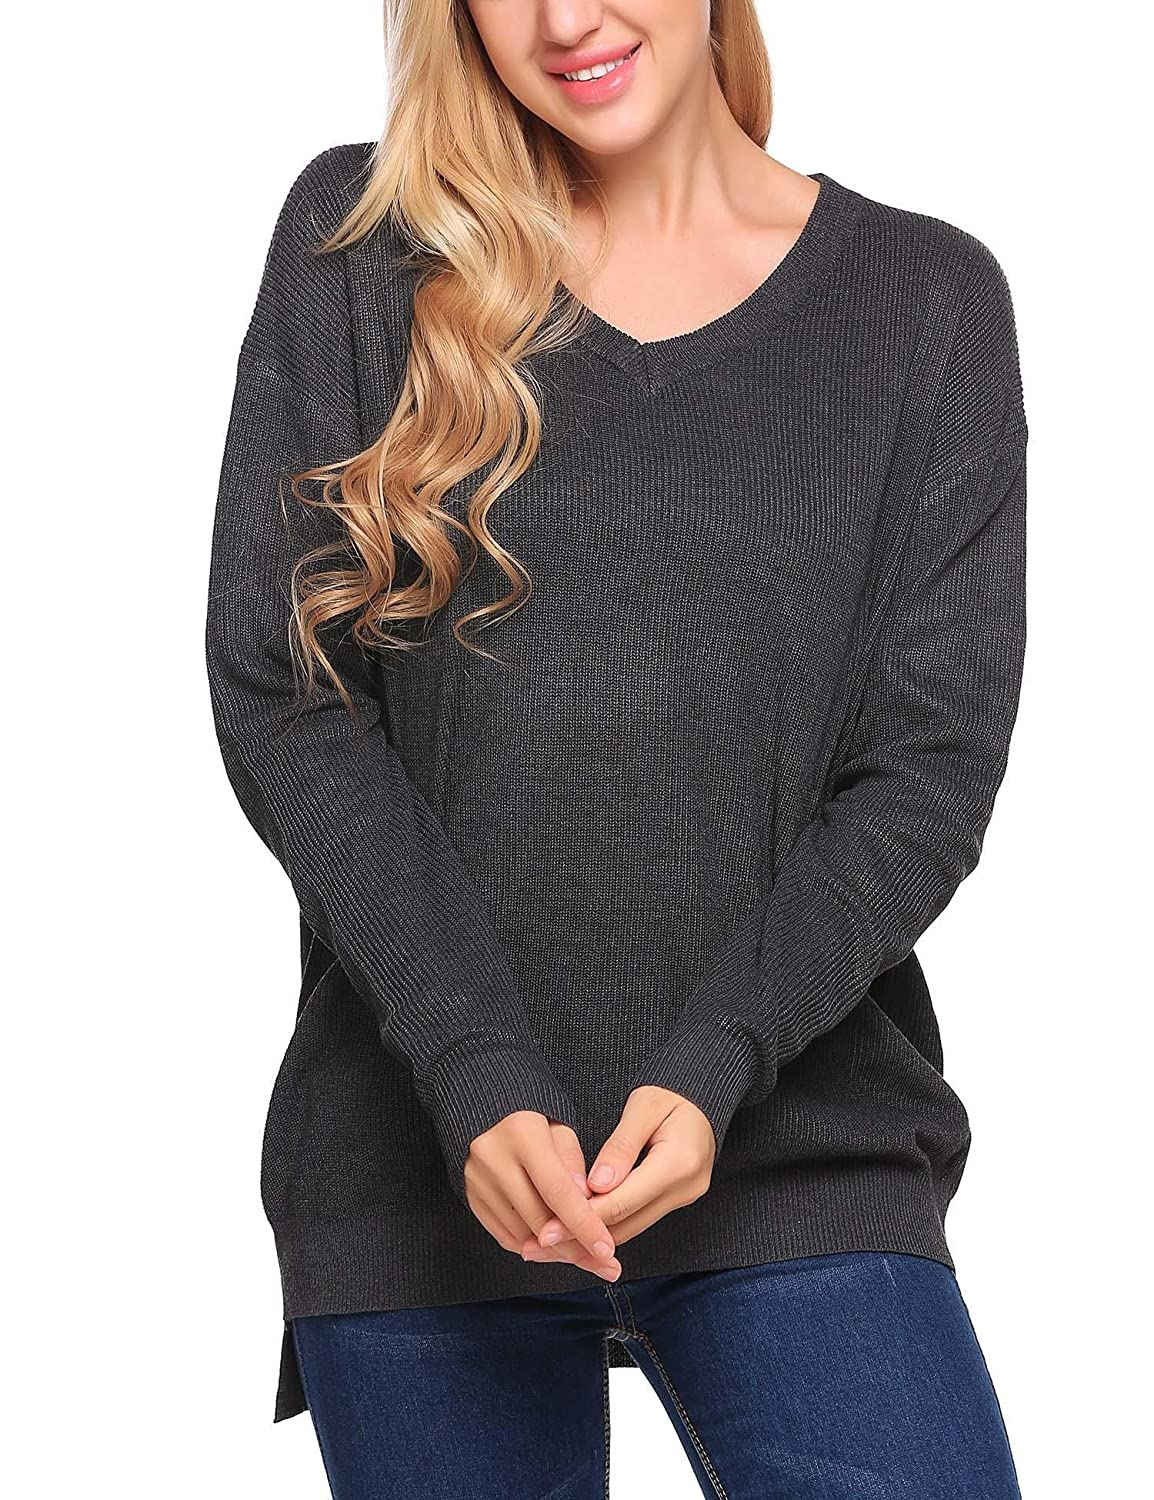 Meaneor Women Autumn V Neck Hi-Low Long Sleeve Oversized Pullover Sweater Top #MAH020834